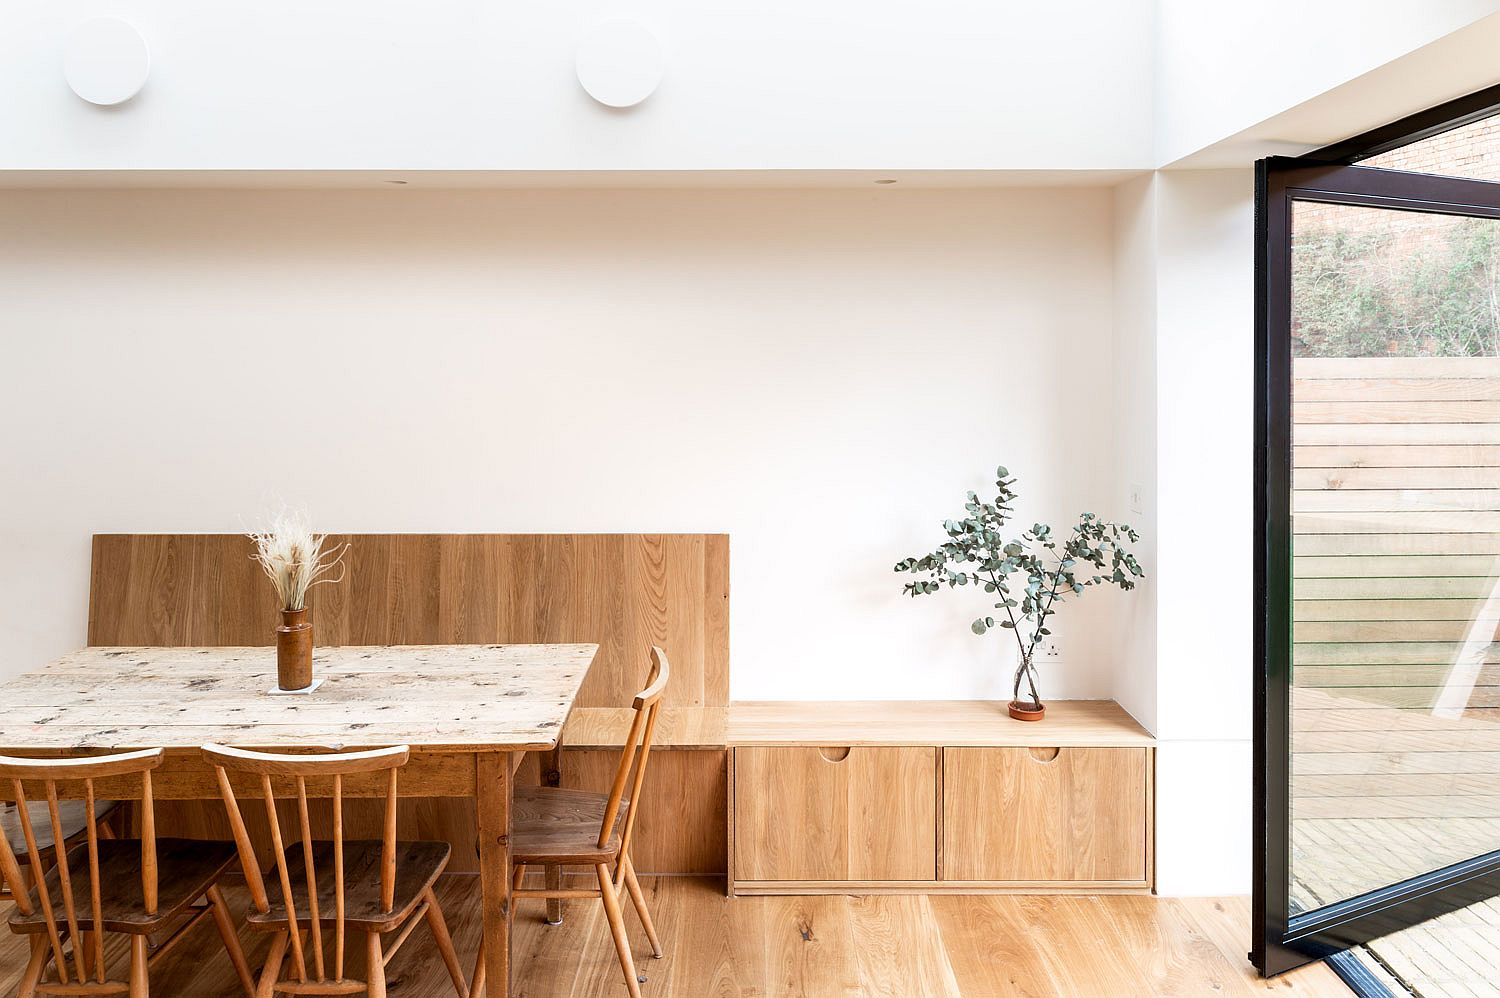 Custom wooden benches for the banquette-styled dining space inside the new kitchen